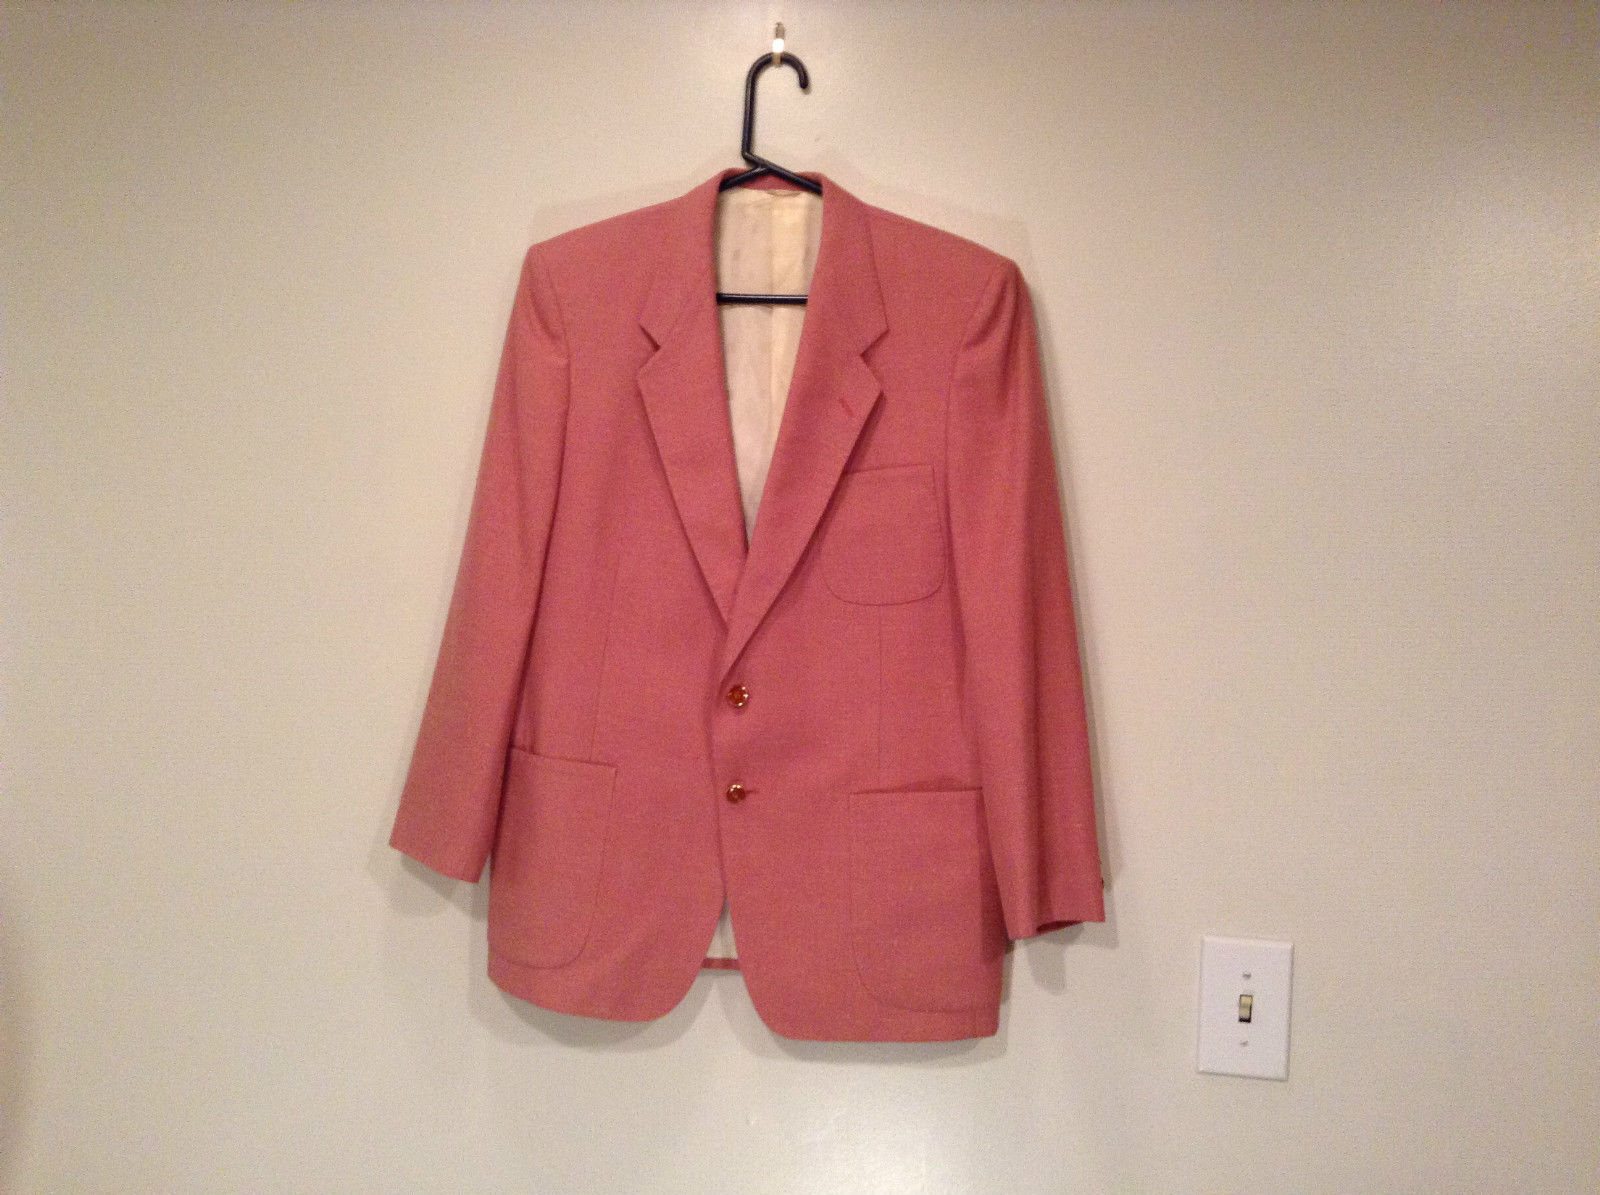 Lined Pink Blazer 2 Button Closure 2 Front Pockets Ratner Clothes No Size Tag